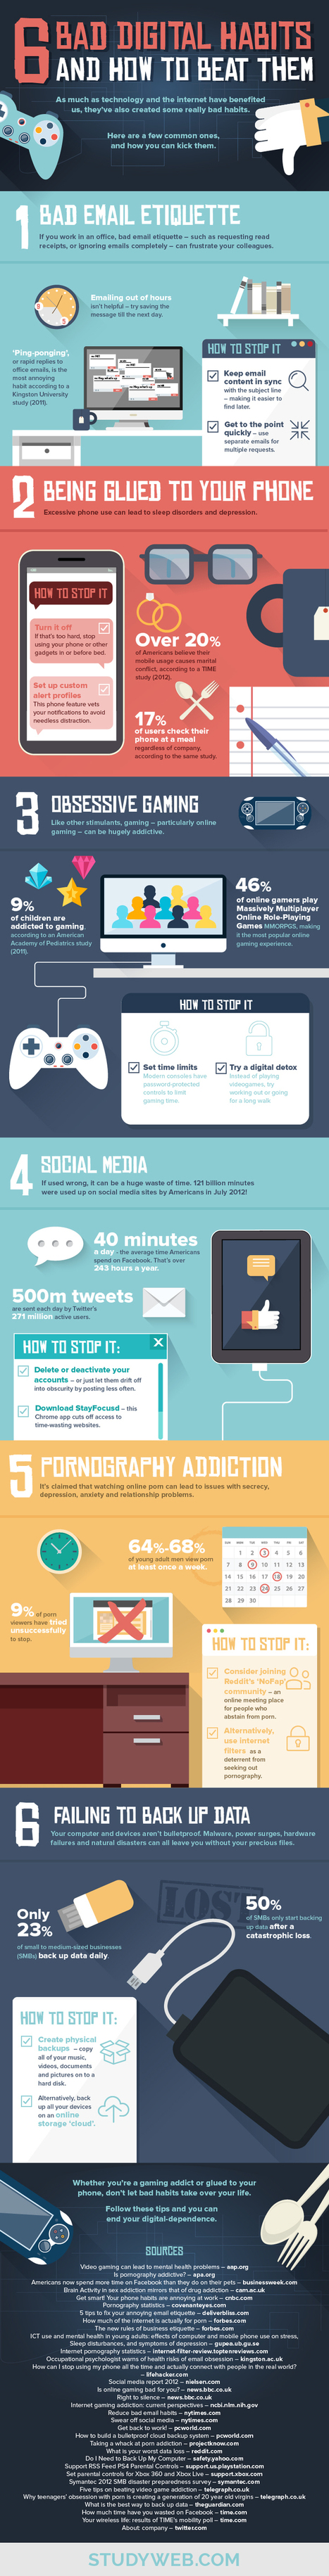 6 Bad Digital Habits and How to Beat Them Infographic | Tablet a l'aula | Scoop.it